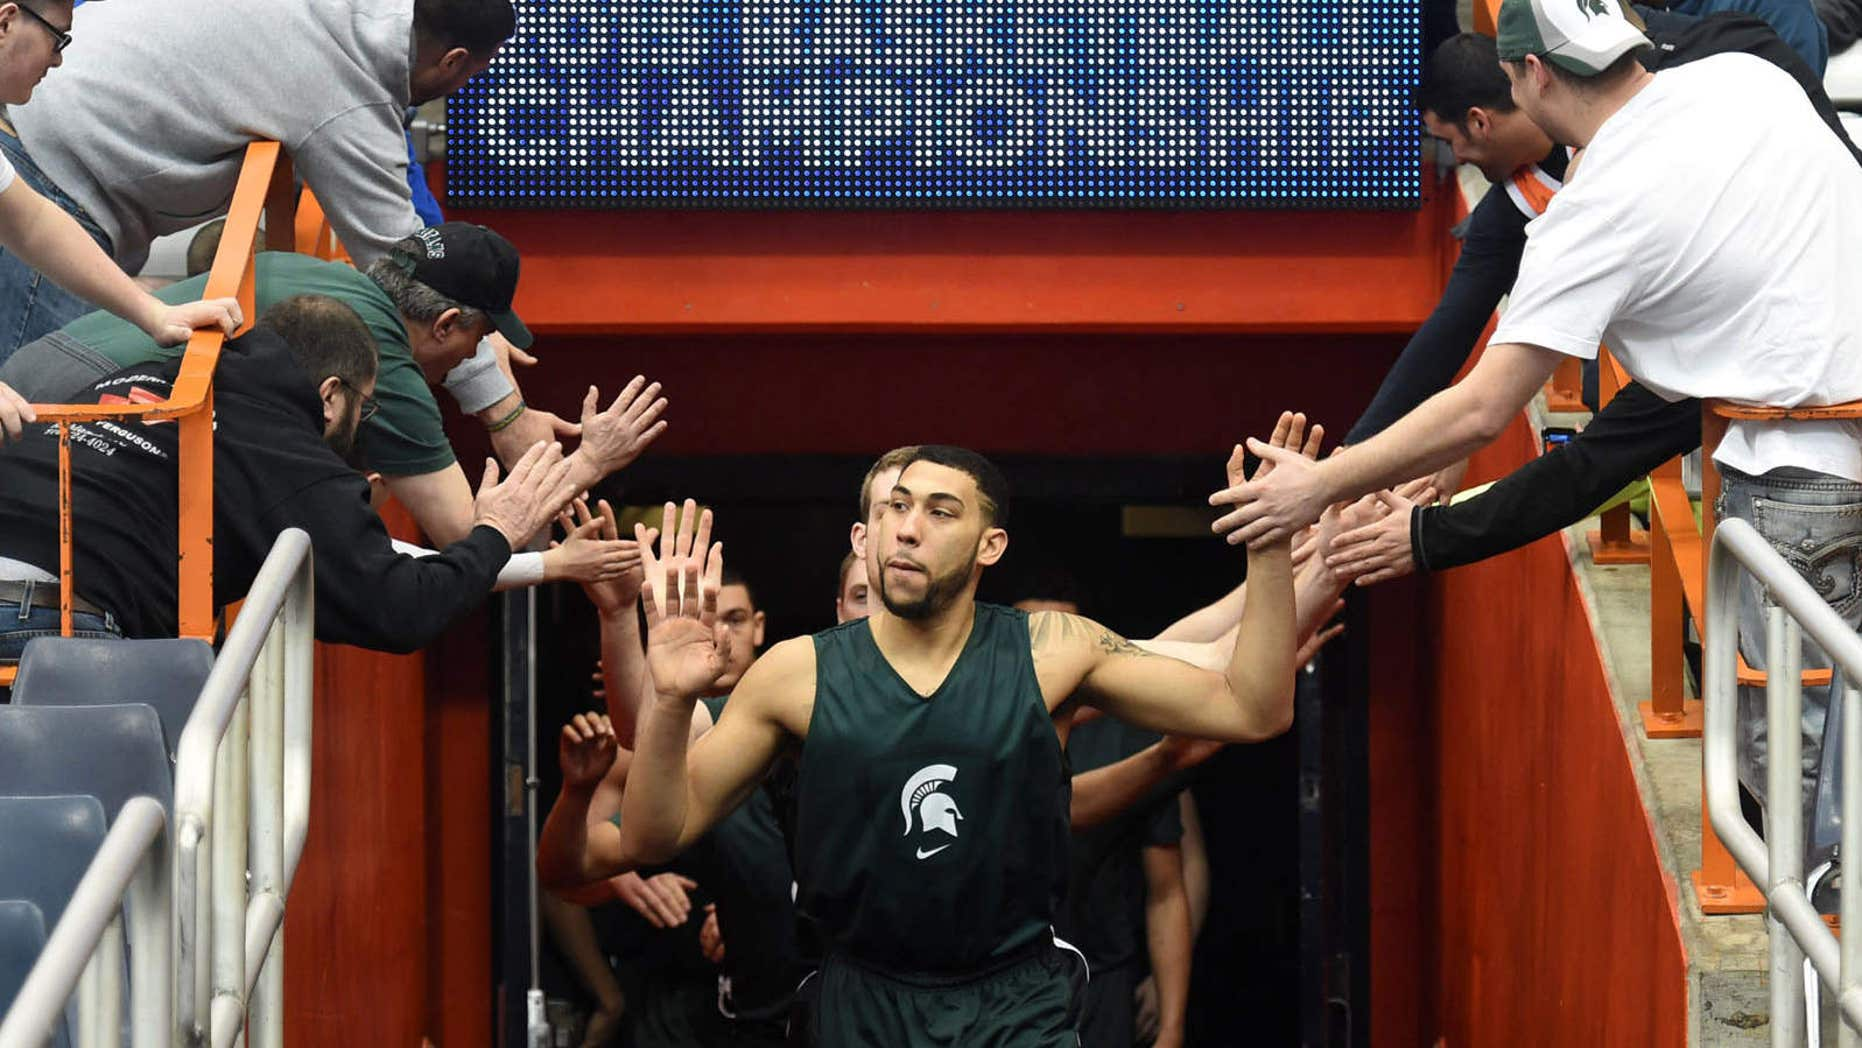 March 26, 2015: The Michigan State basketball team enters the Carrier Dome before practice for an east regional semifinal in the NCAA Tournament.